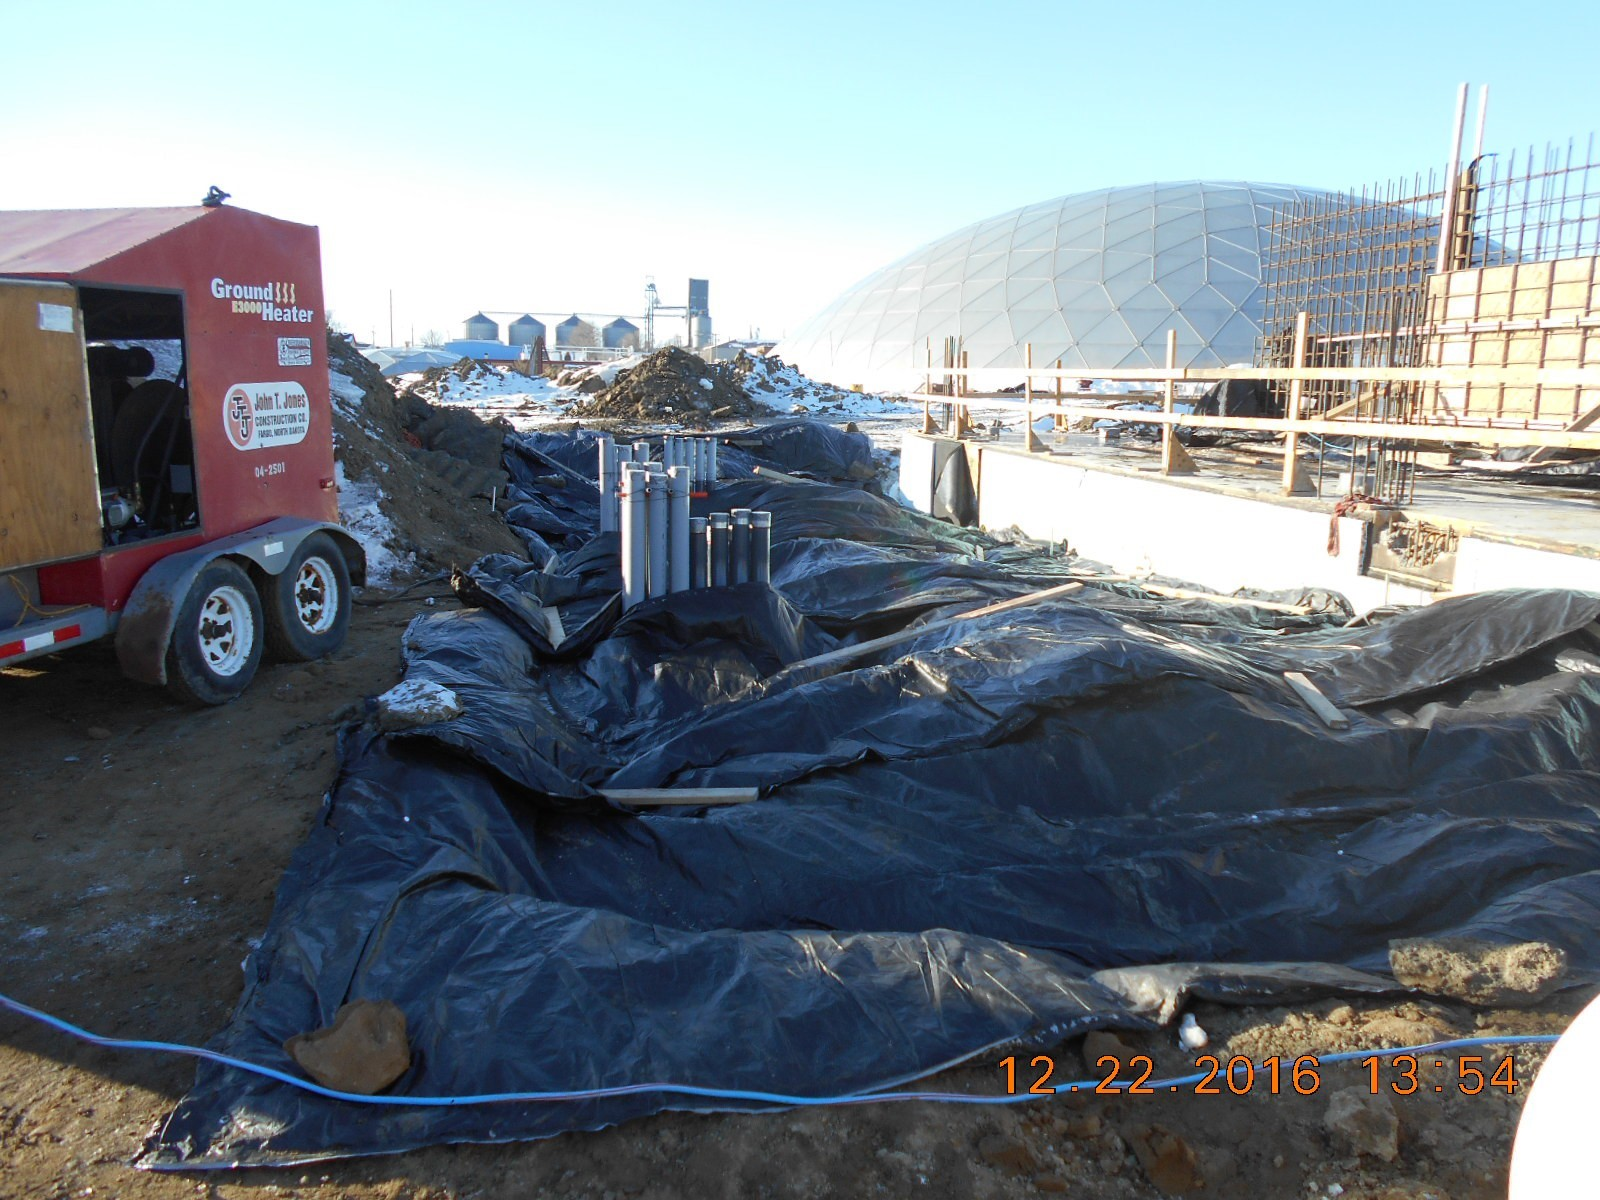 Ground thaw and blankets placed to protect the ground from frost in preparation for construction of the concrete pads.